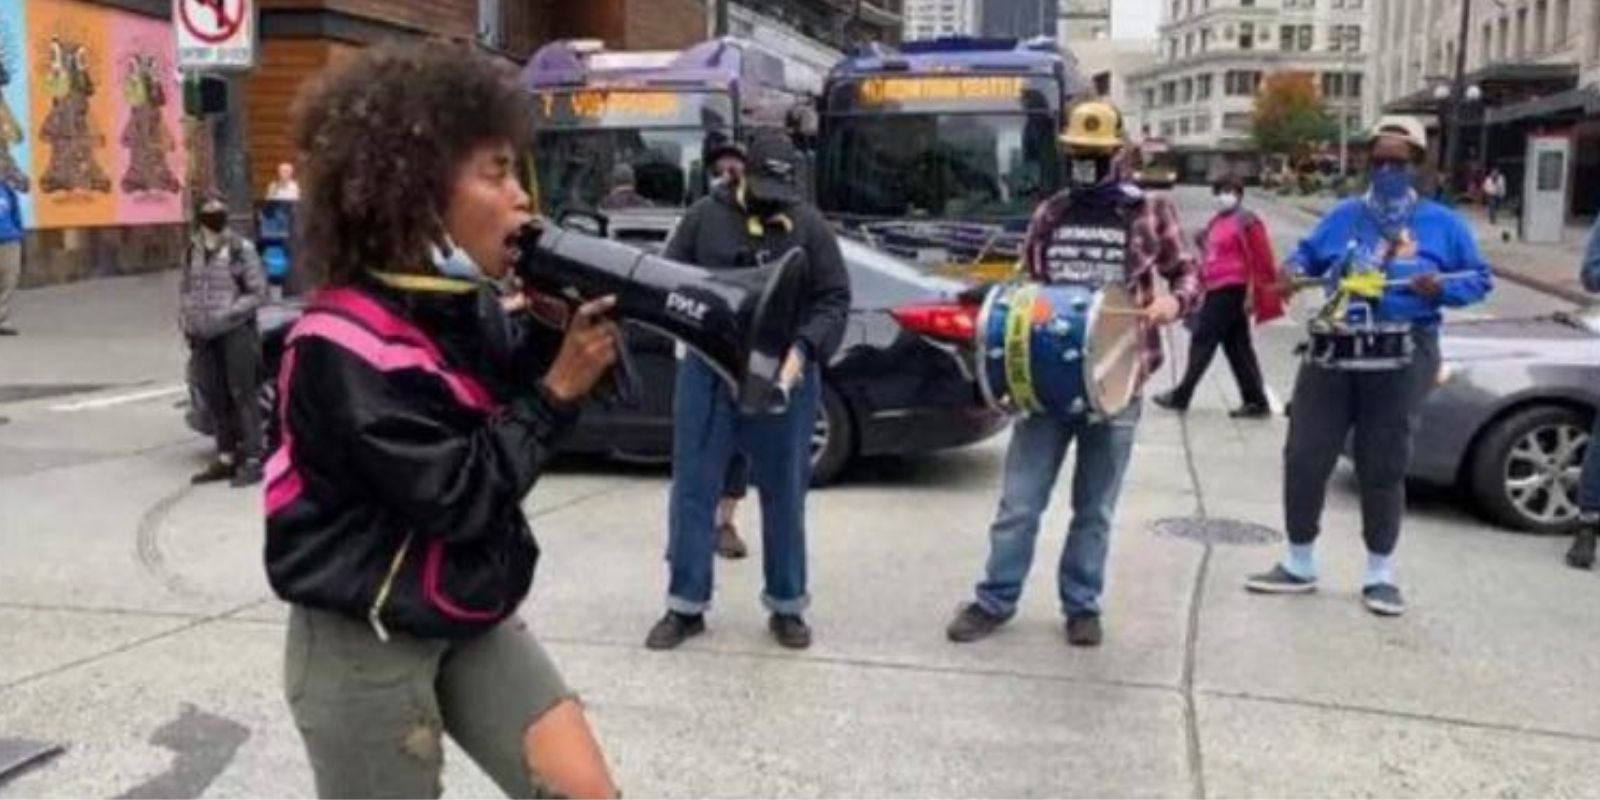 REVEALED: BLM organizer lives posh lifestyle, father works for city of Seattle